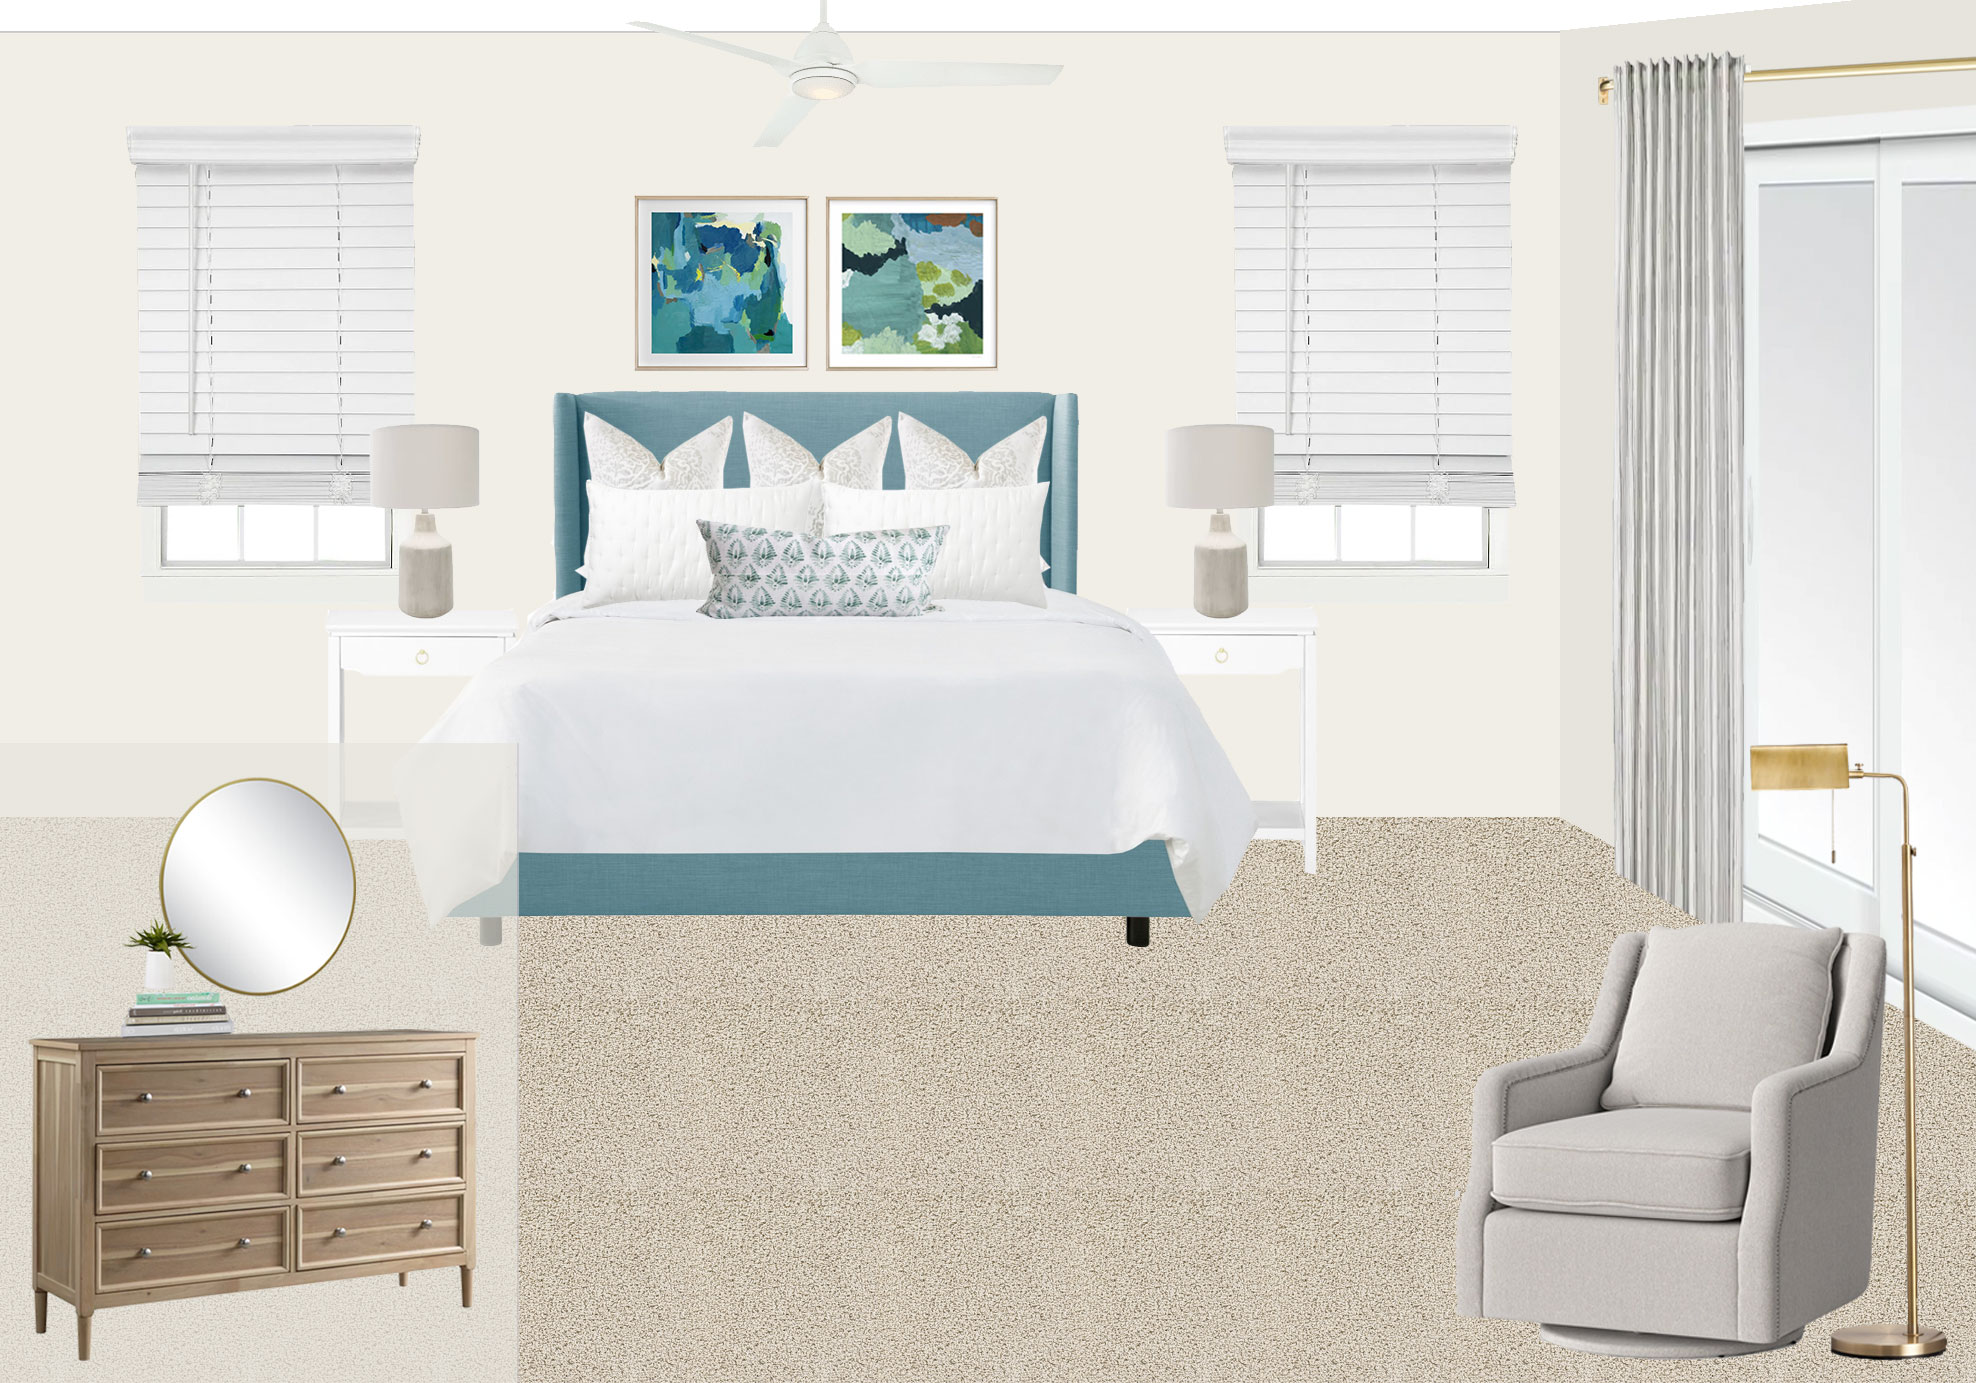 Are you redecorating your home in 2019? Let's chat! My approachable and affordable e-design packages might be just the right fit. Get the design help you need from Mix & Match Design Company's virtual interior design services and turn your home into a space you love! // beach house bedroom, modern farmhouse coastal bedroom, coastal modern bedroom